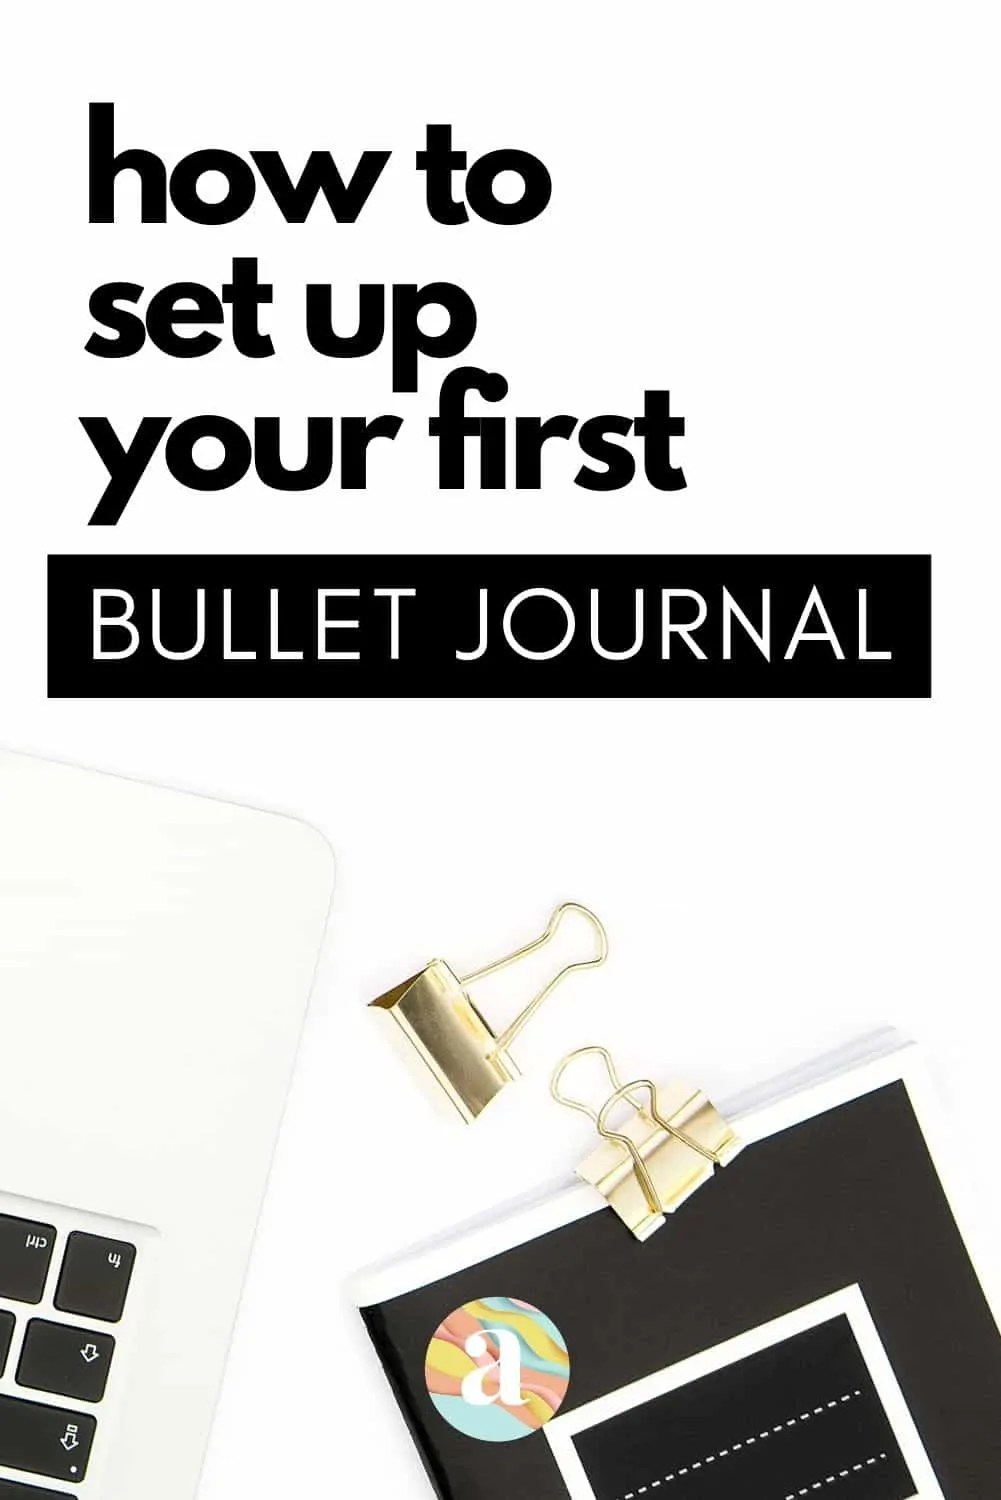 How to set up Bullet Journal - Honest Review of Brainbook 35